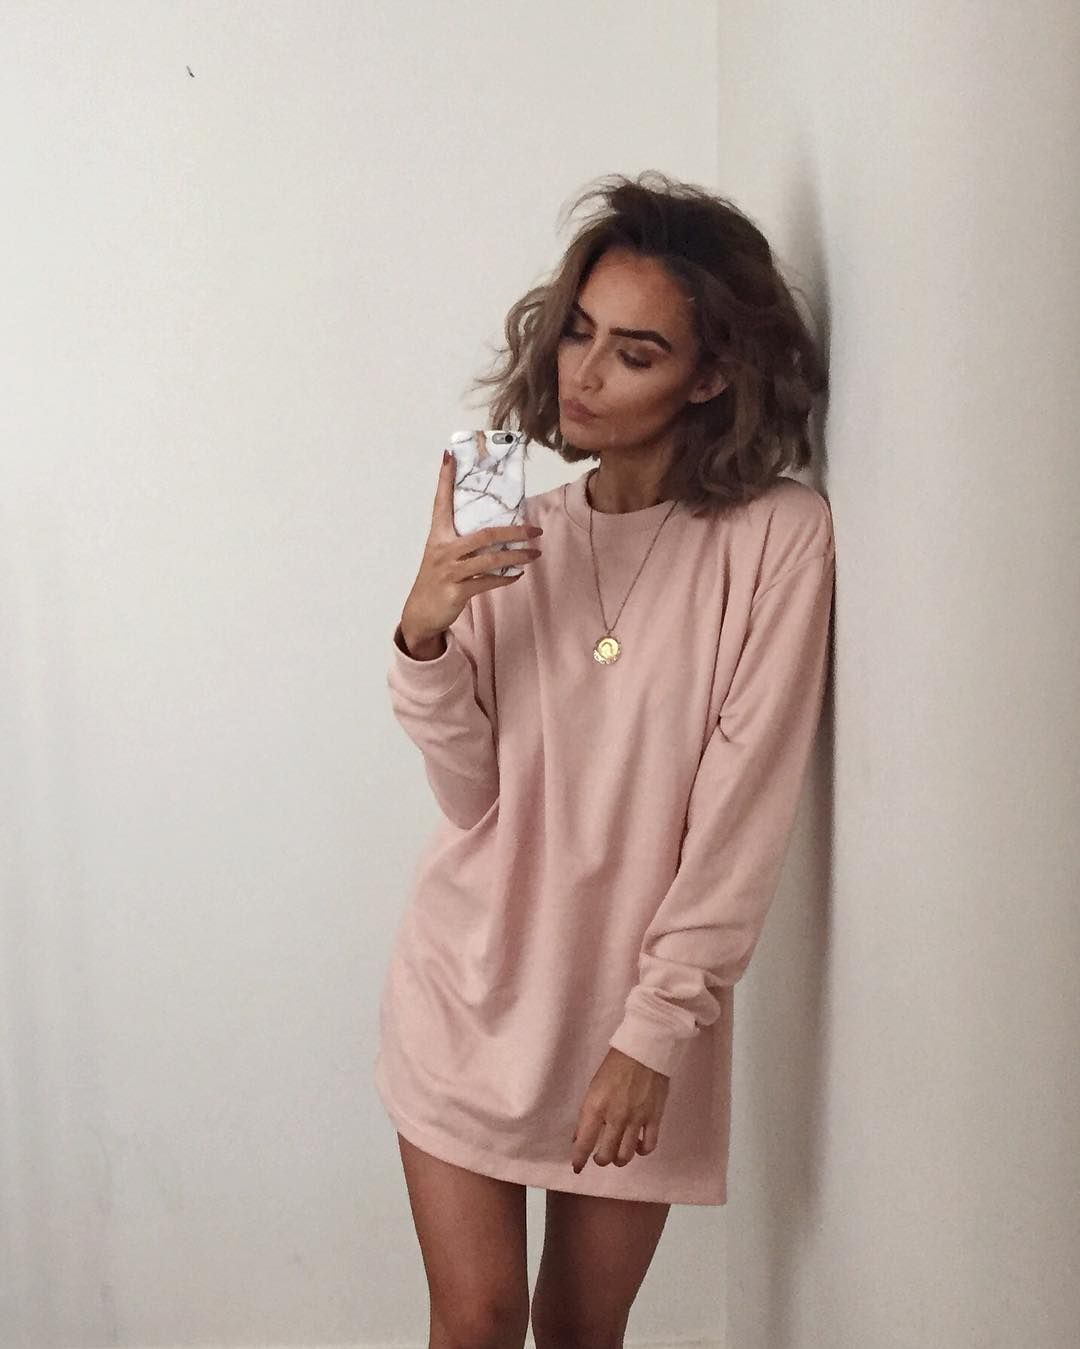 c6156660c00 Missguided Oversized Jumper Dress - https   www.missguided.co.uk